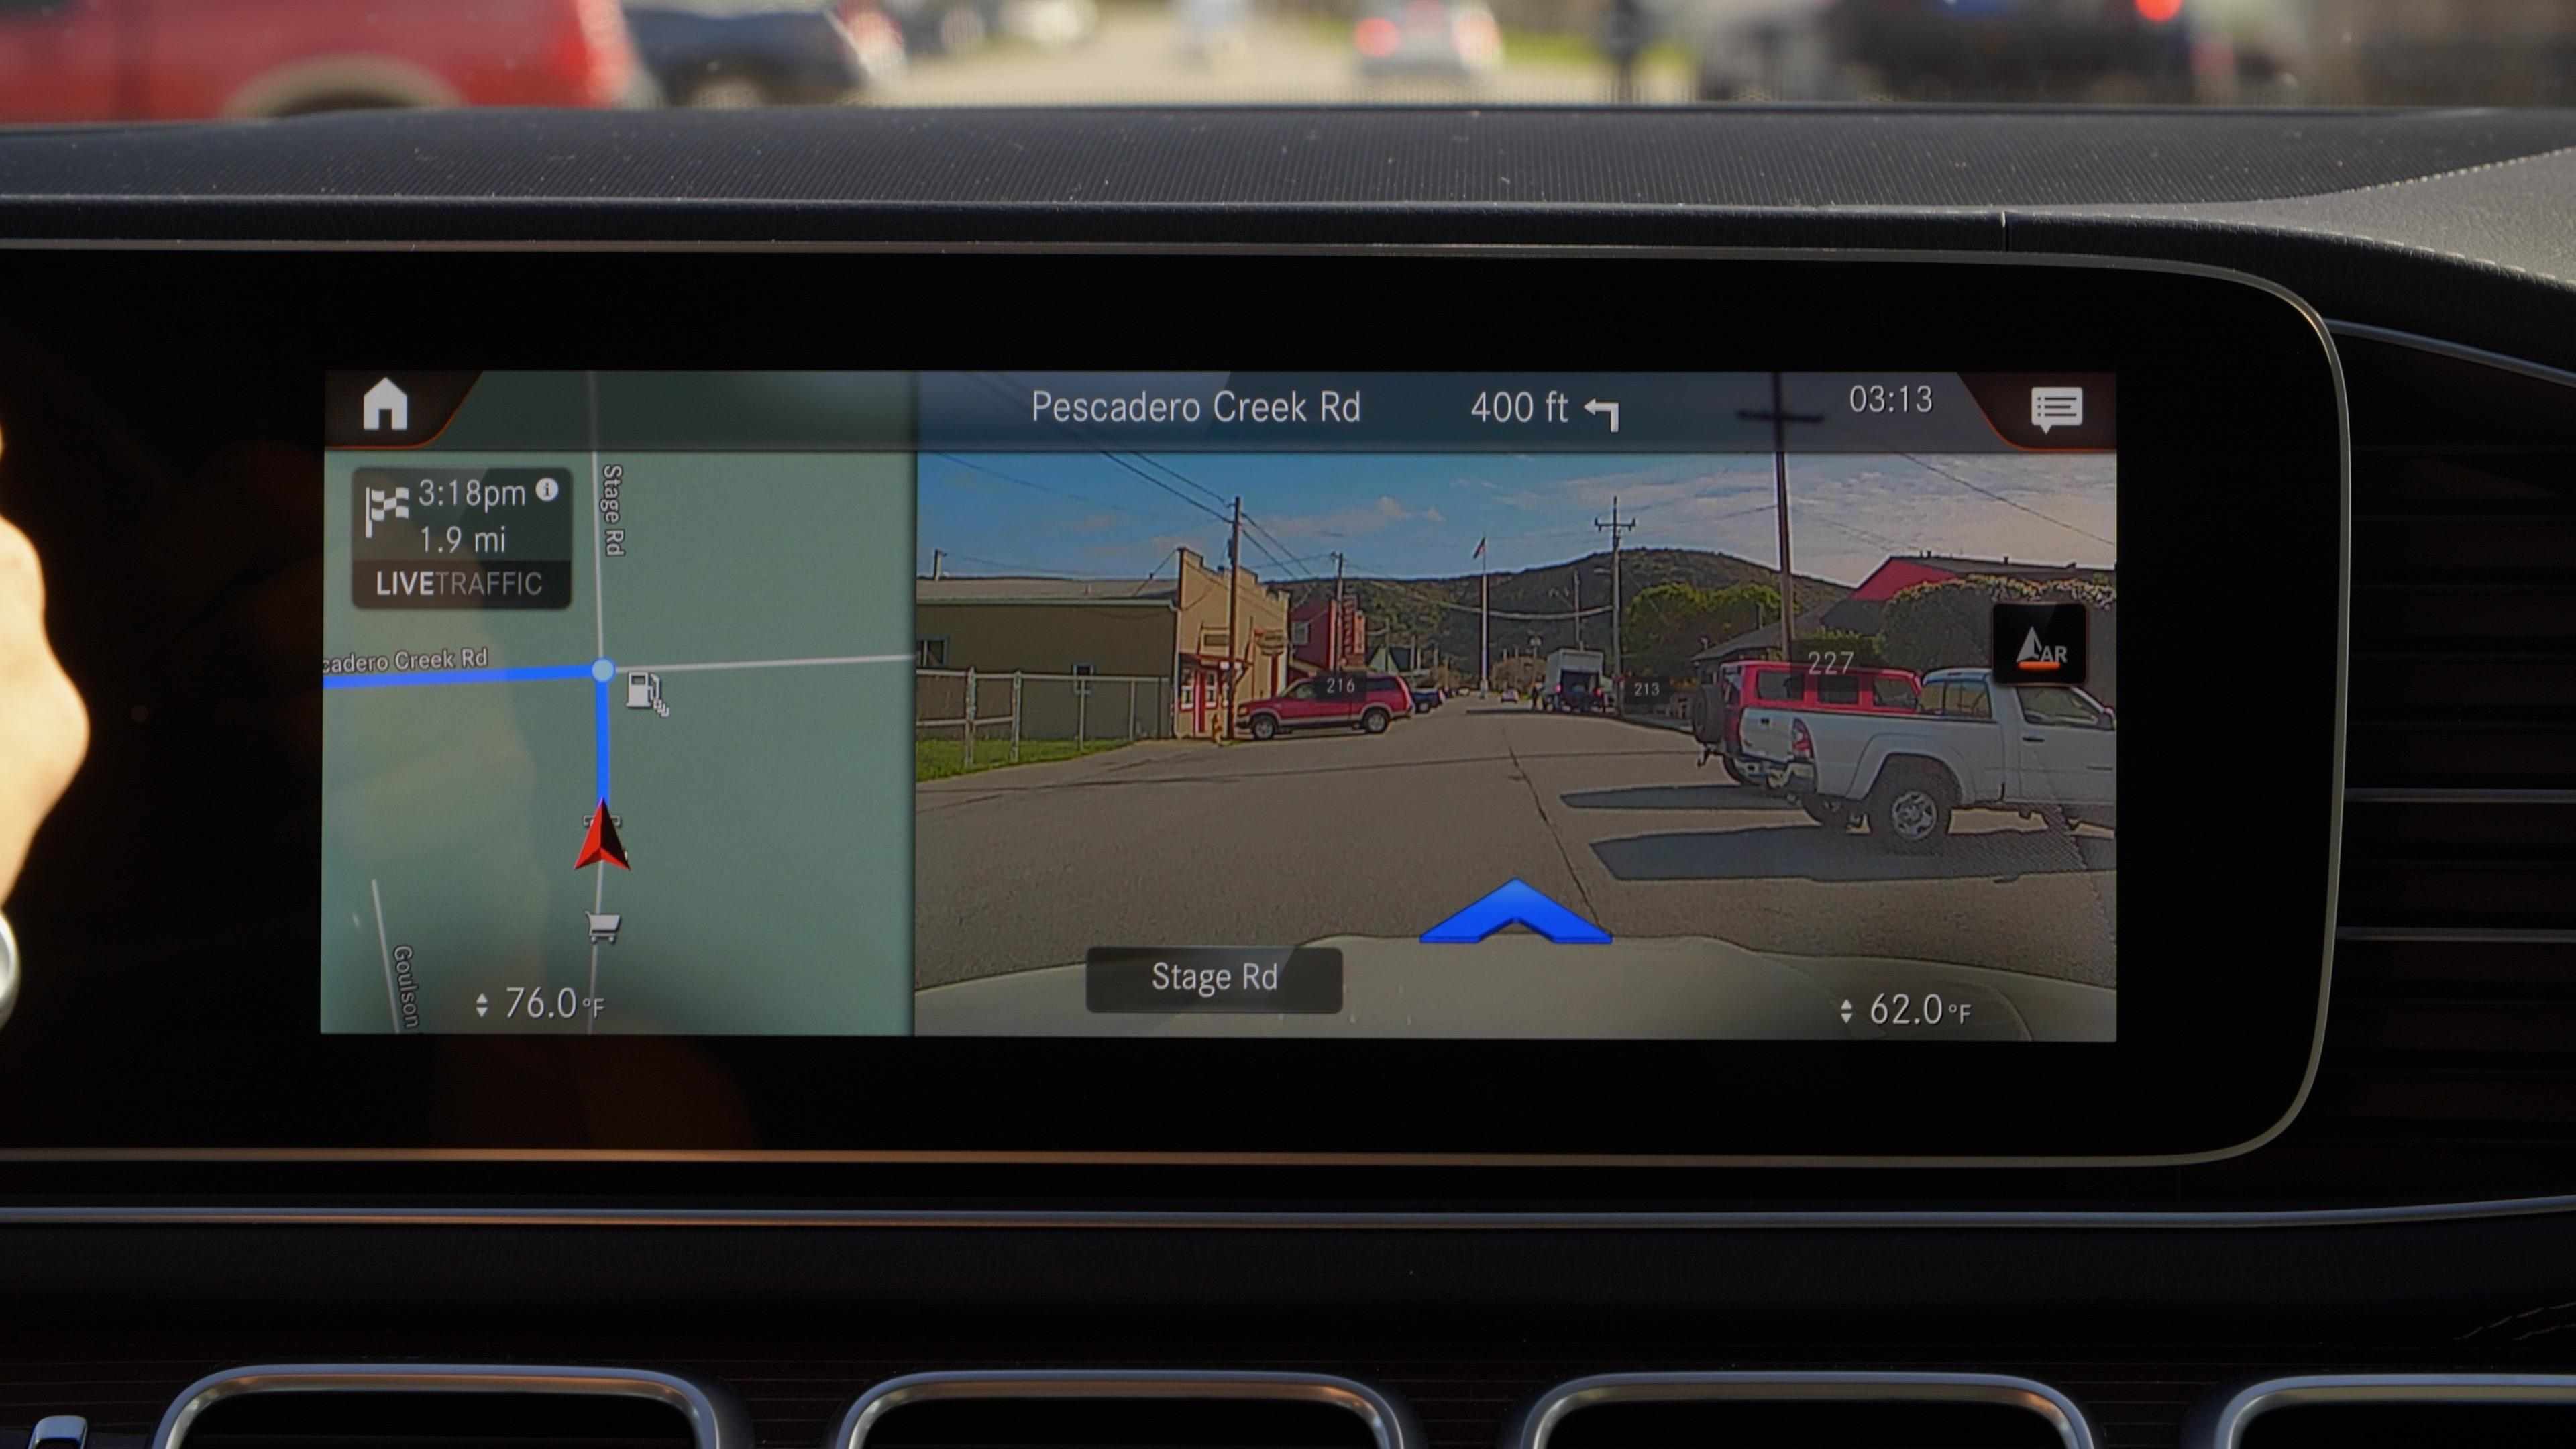 Video: Checking the tech in the 2020 Mercedes-Benz GLE450